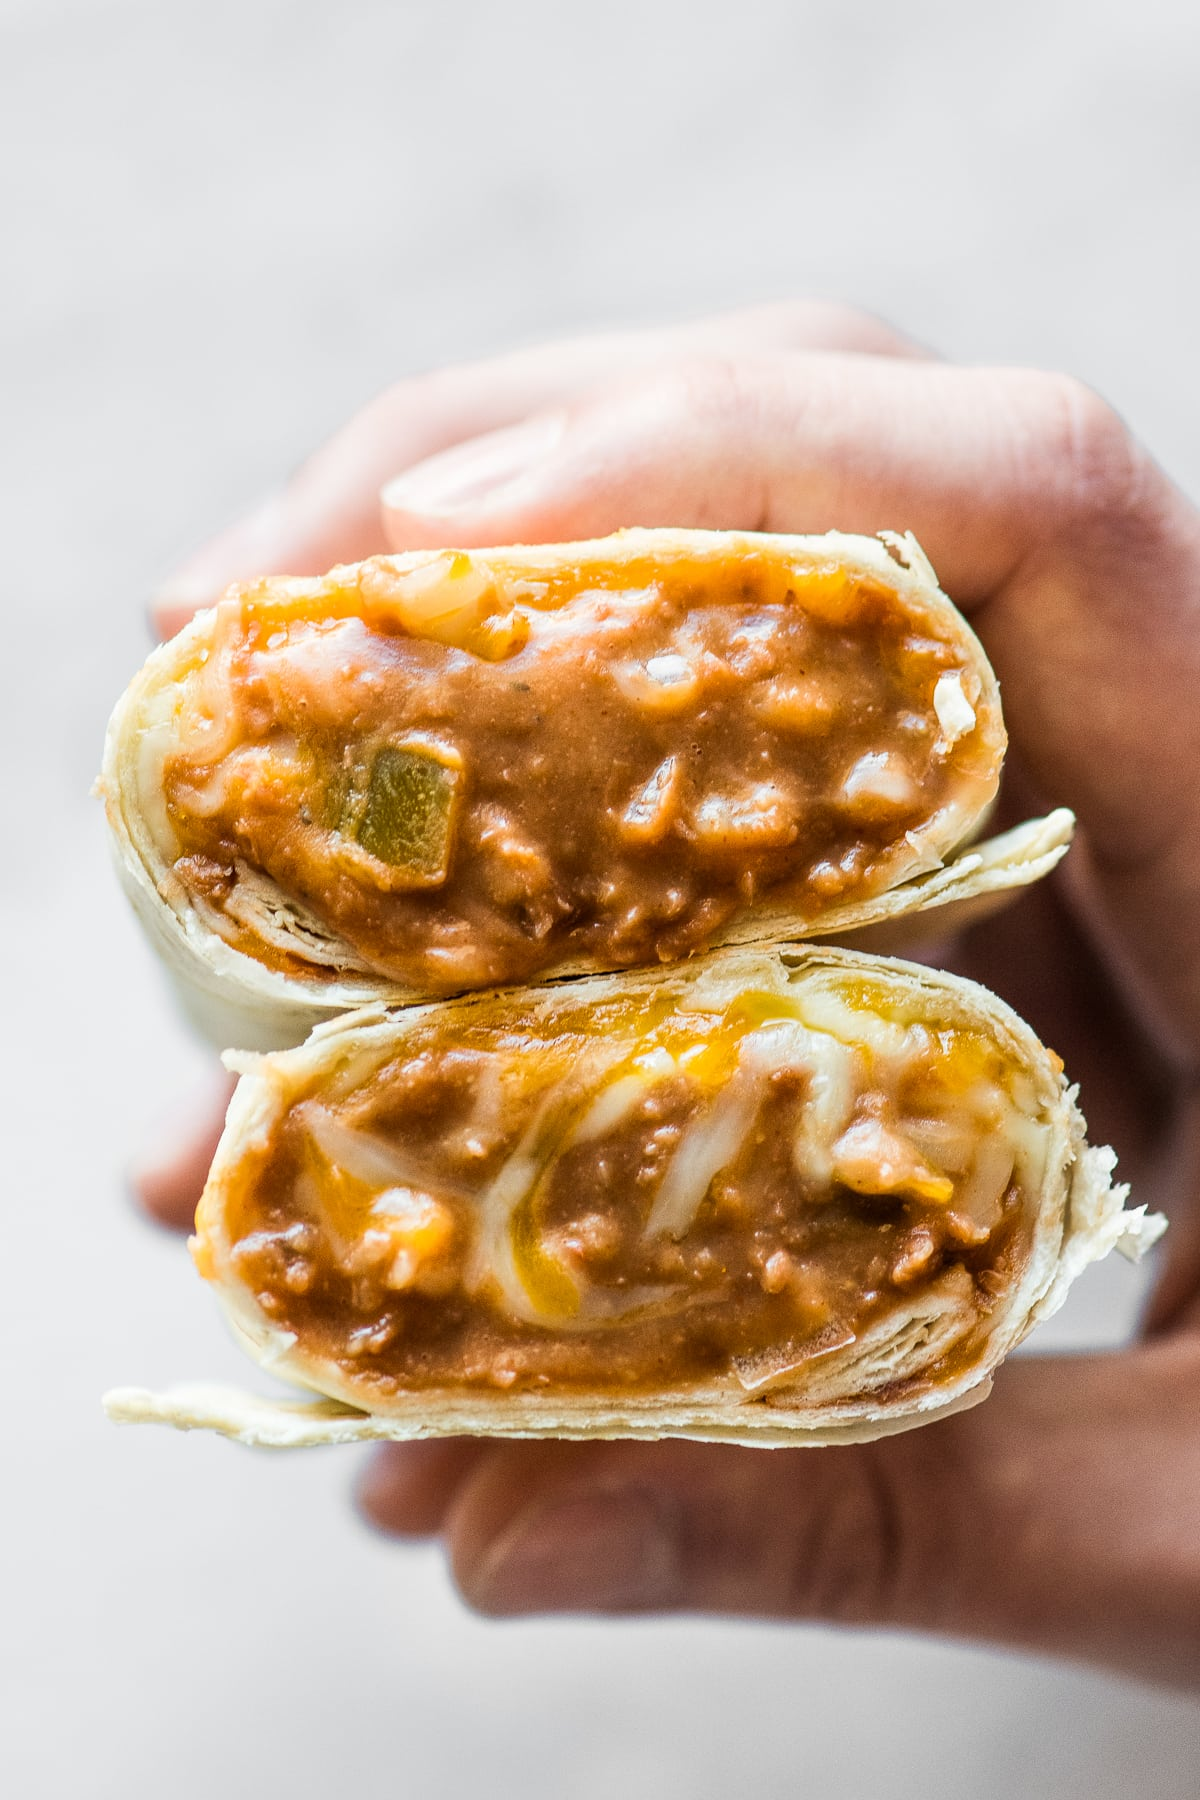 A bean and cheese burrito cut in half with the filling coming out.